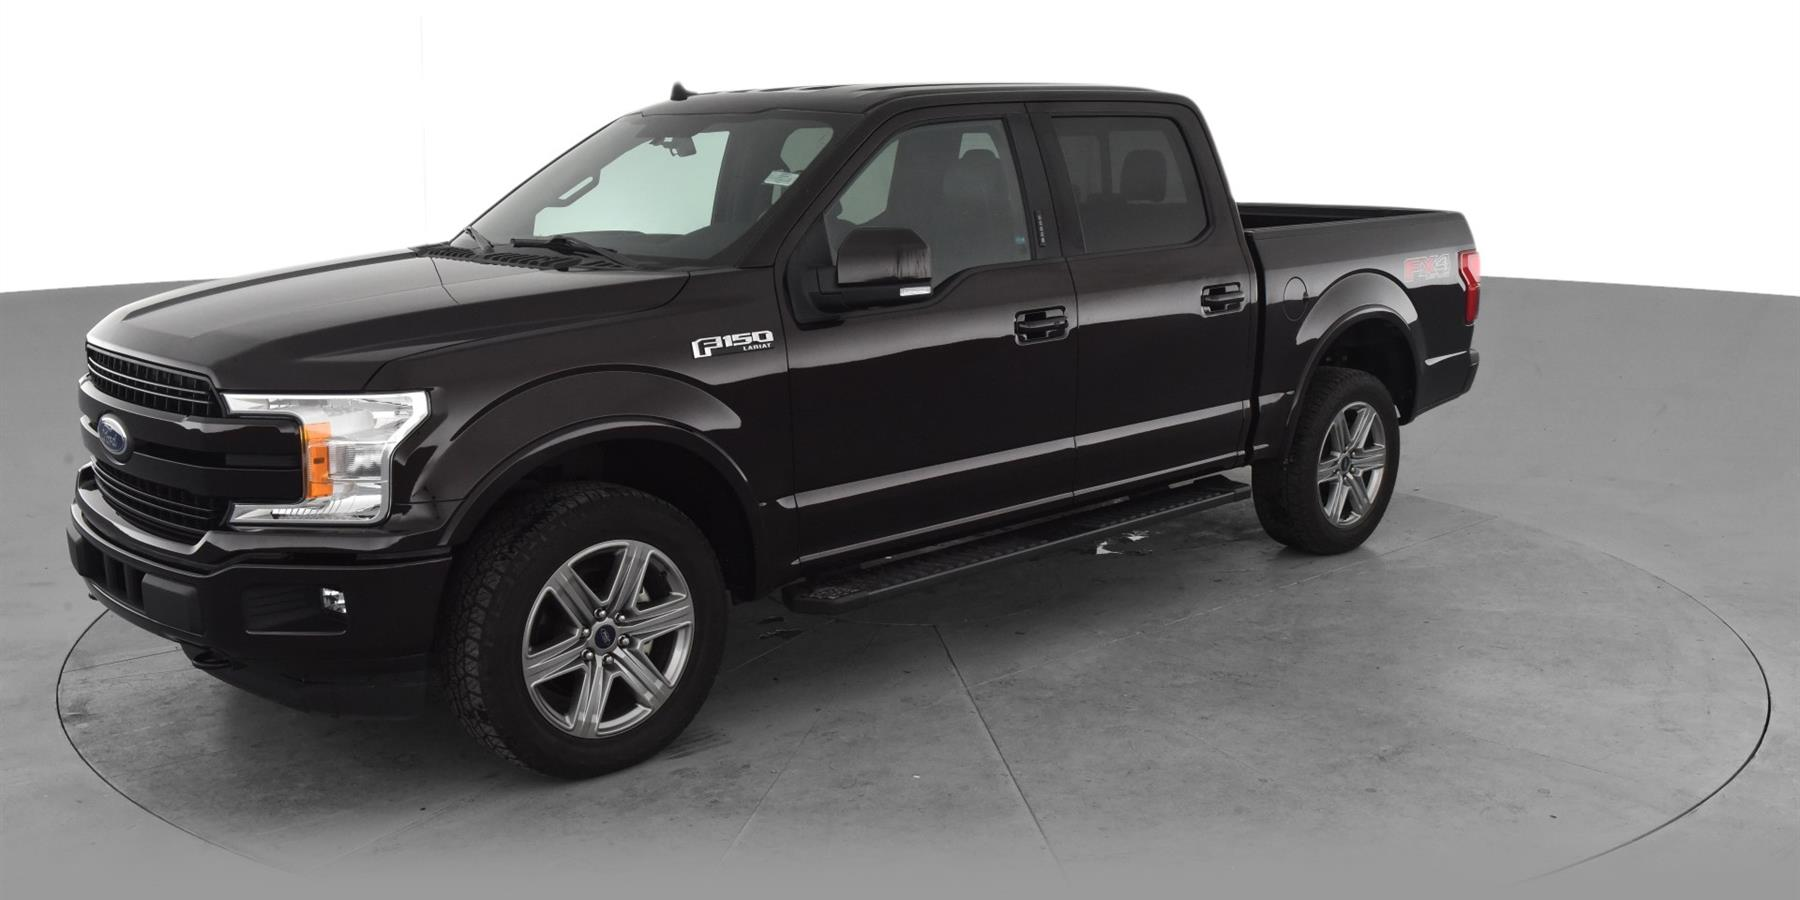 2018 Ford F150 SuperCrew Cab Lariat Pickup 4D 5 1/2 ft for